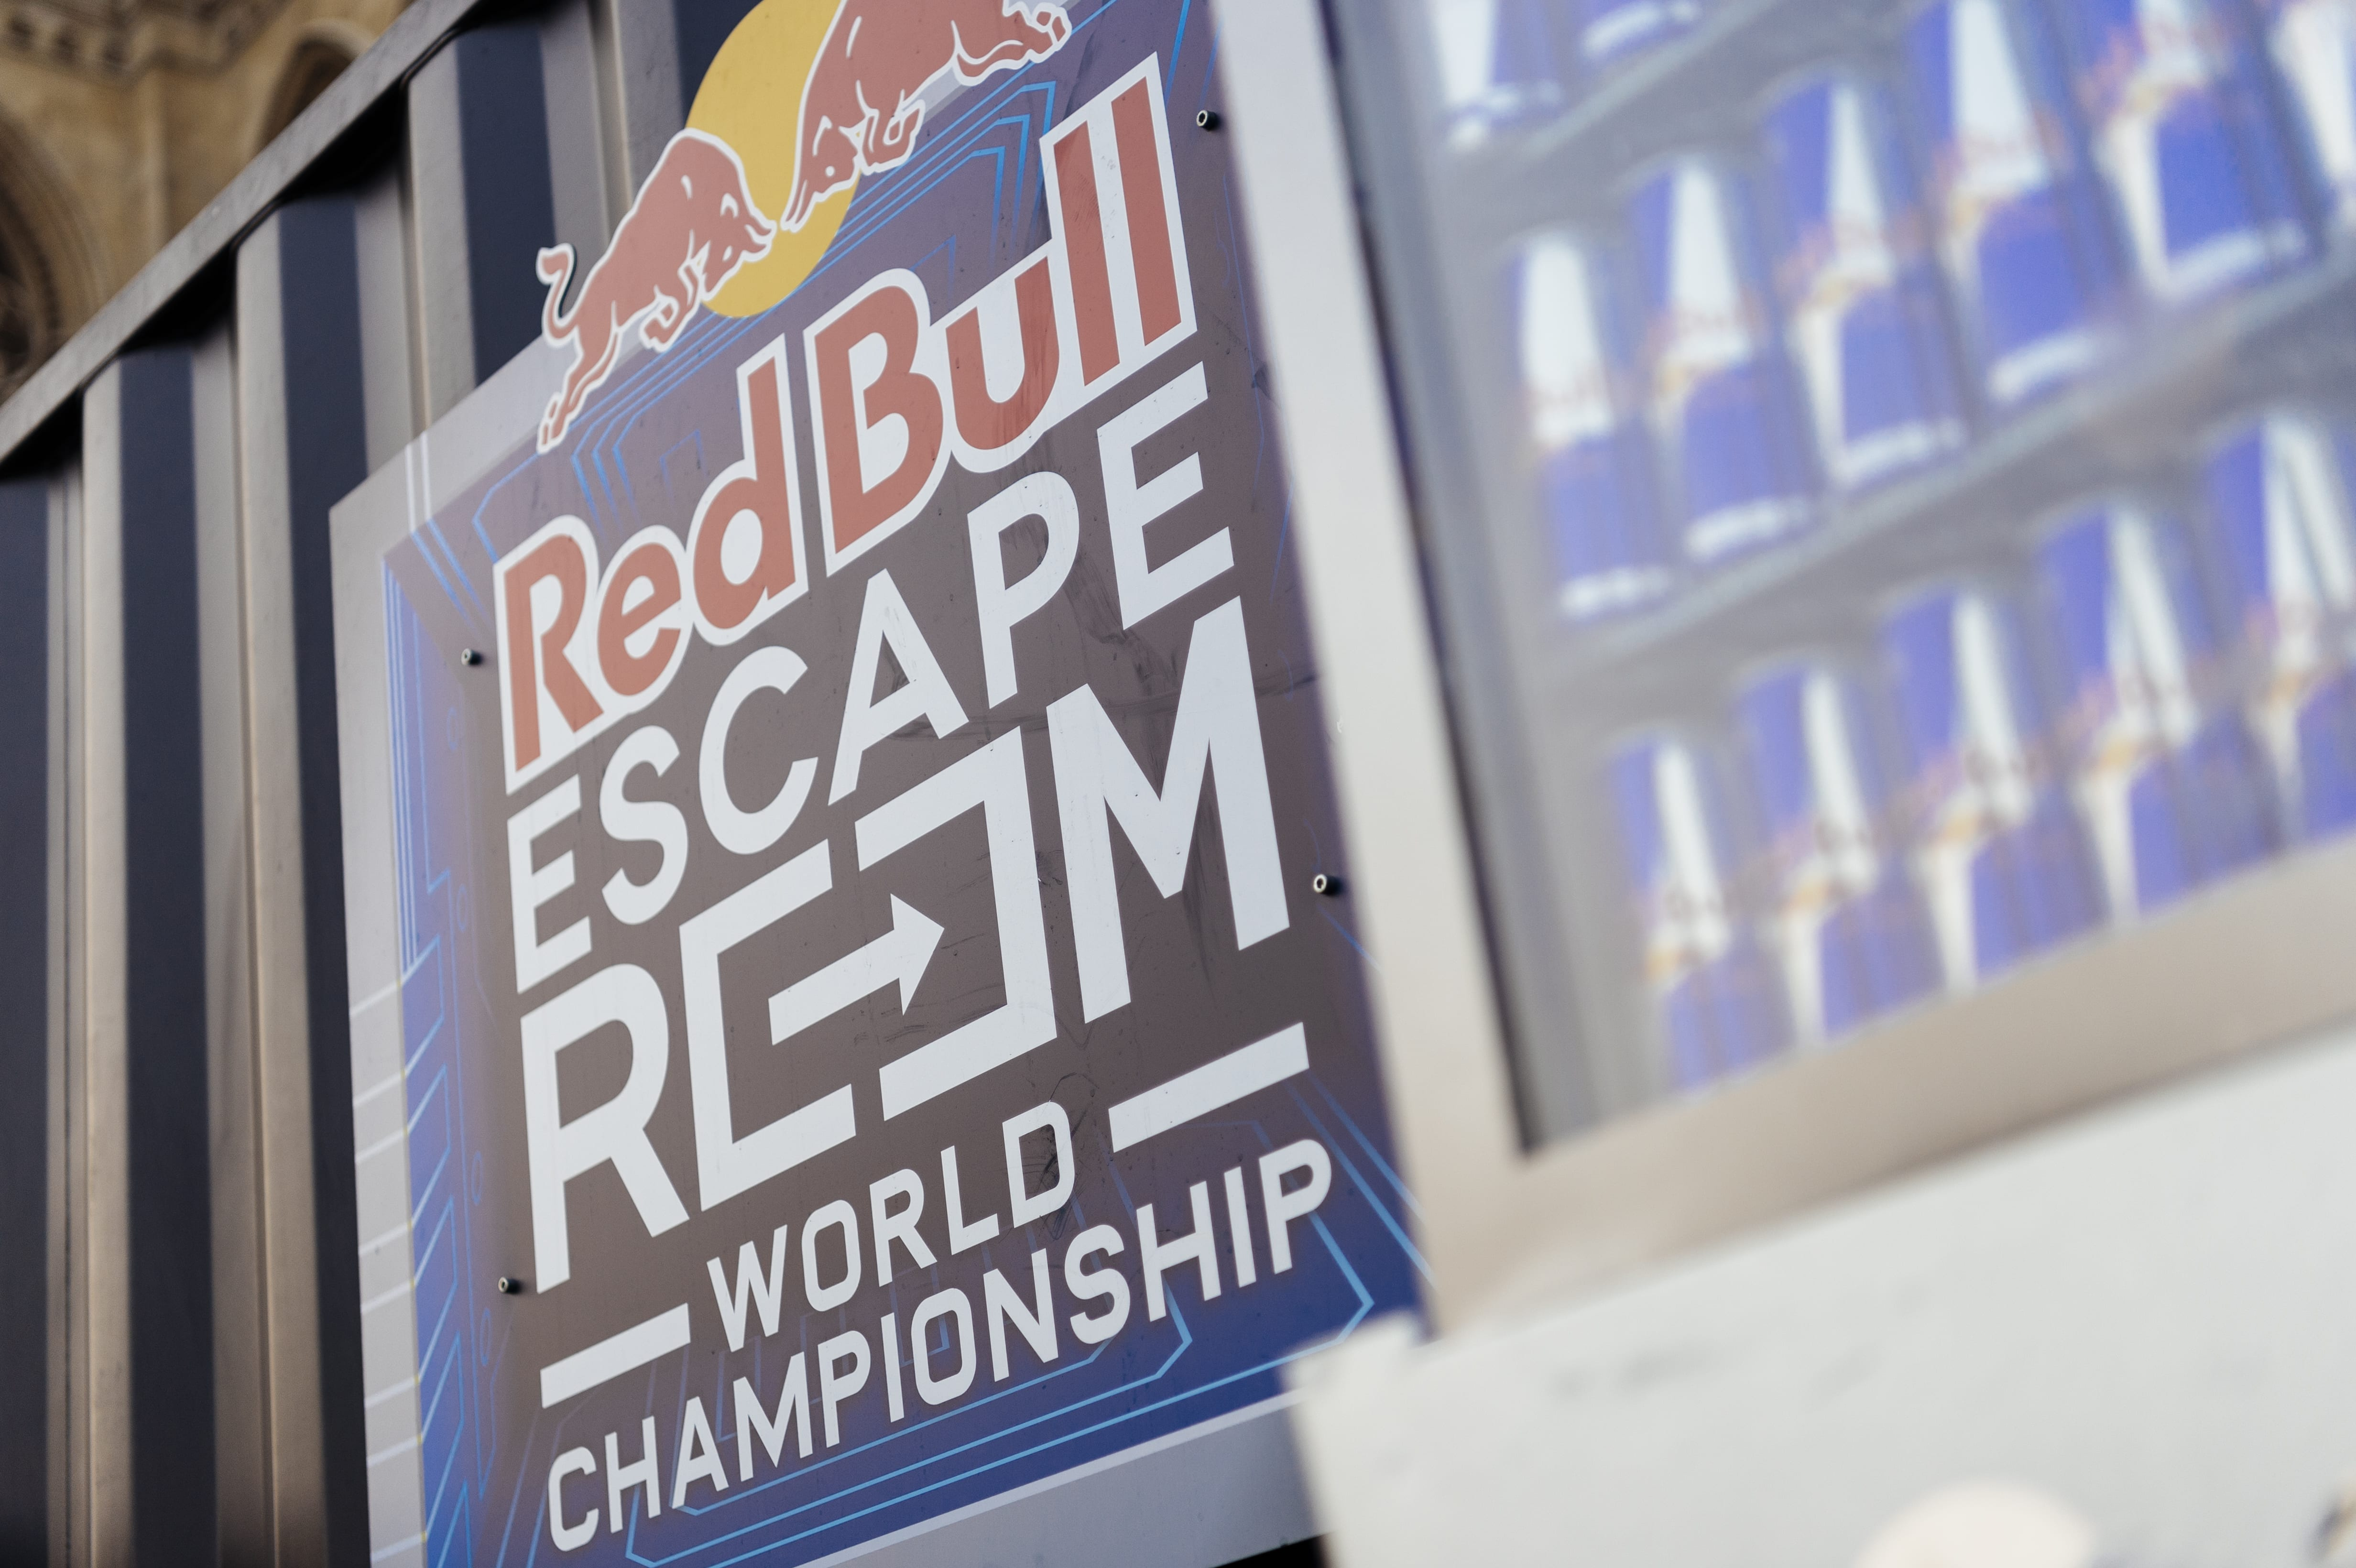 Detail of a sign at the Red Bull Escape Room World Championship Qualifier 2018 Vienna, Austria on October 19th, 2018